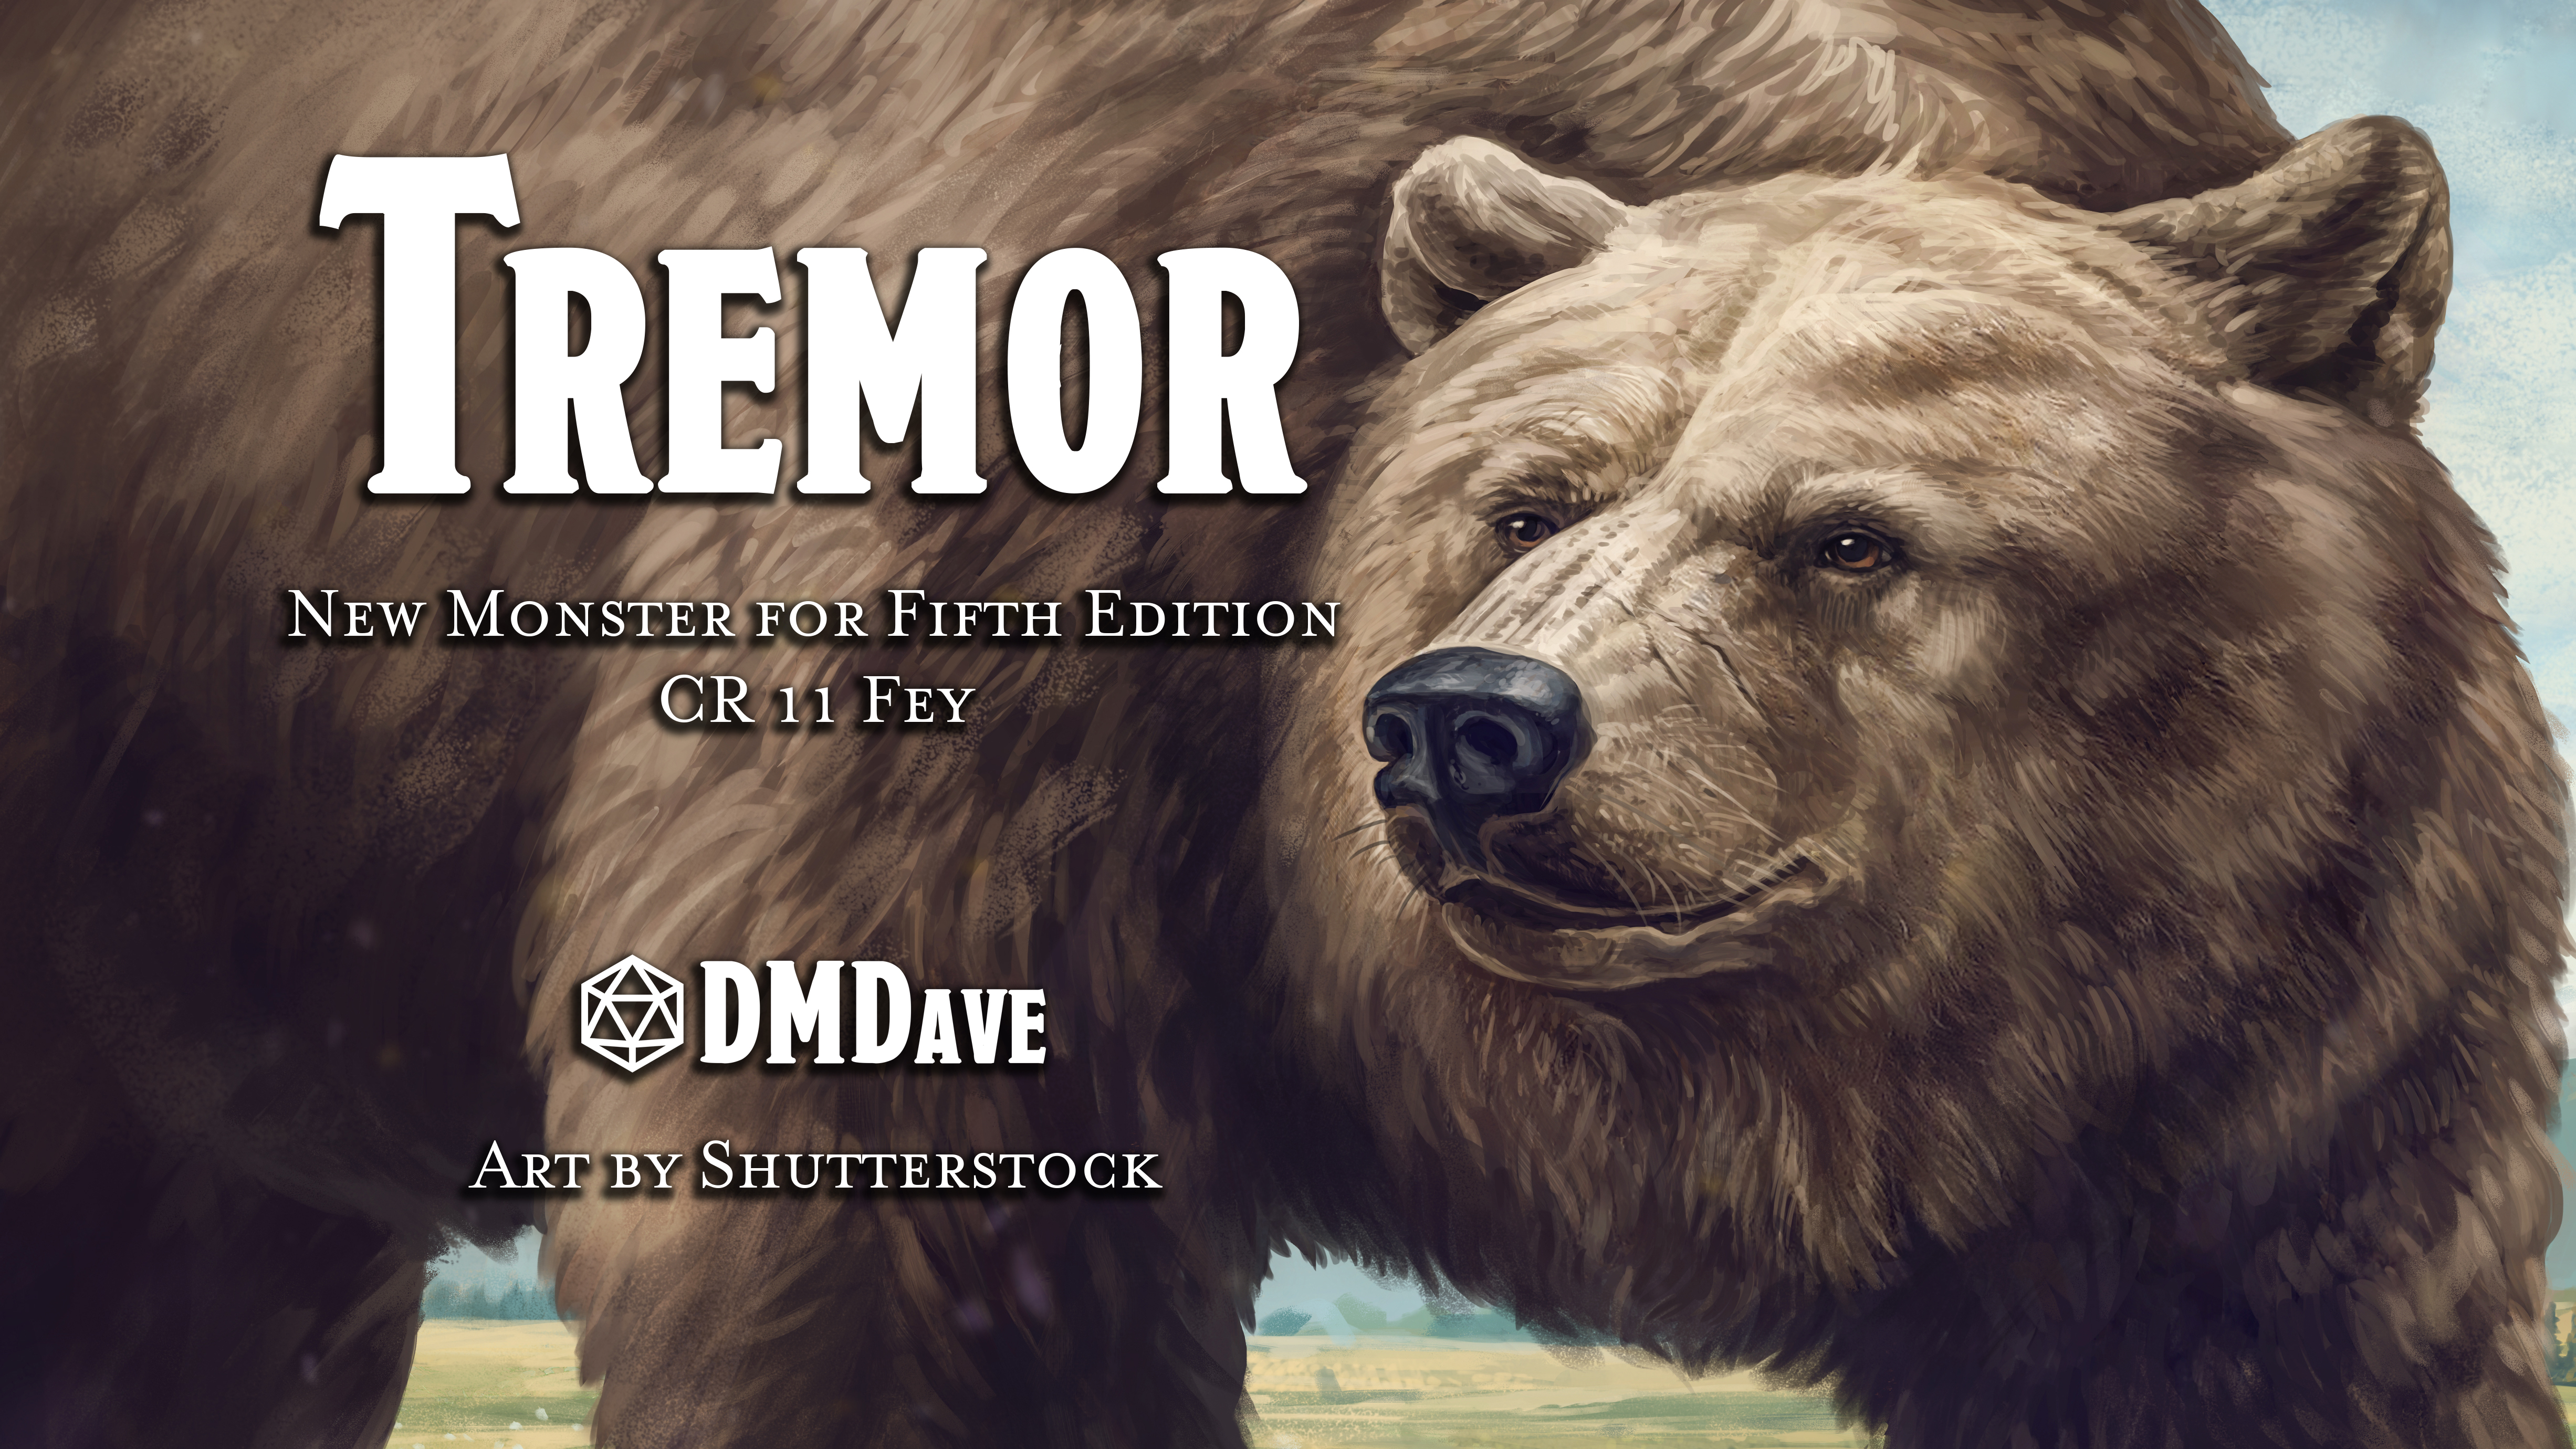 Tremor | New Monster for Fifth Edition